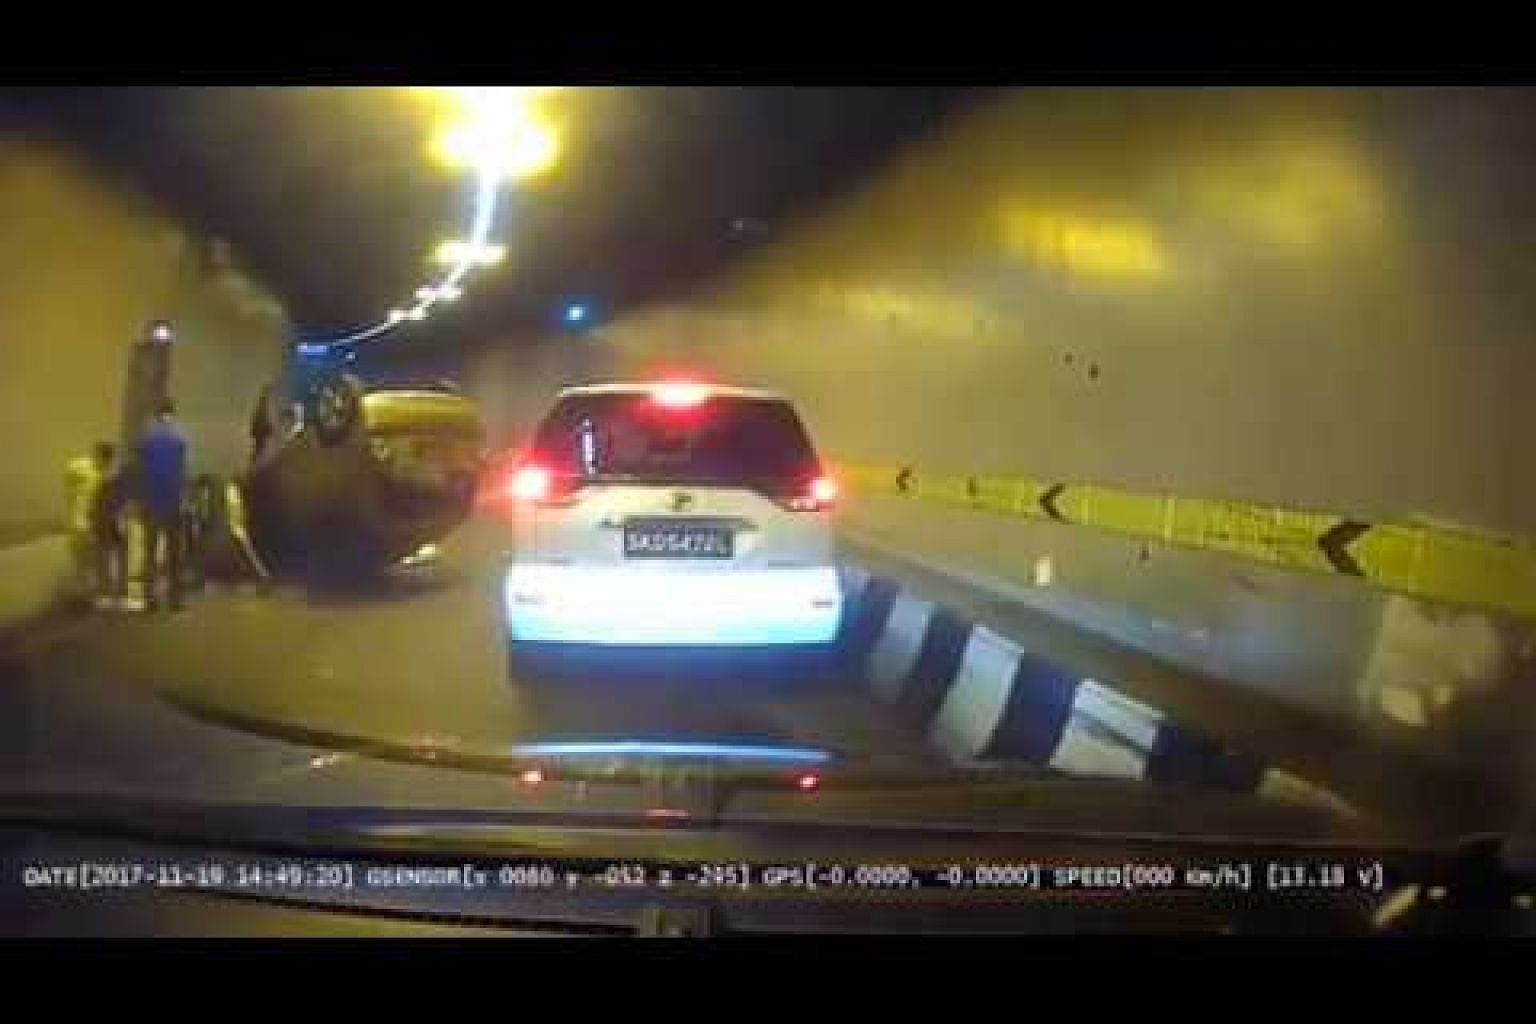 Accident in CTE tunnel